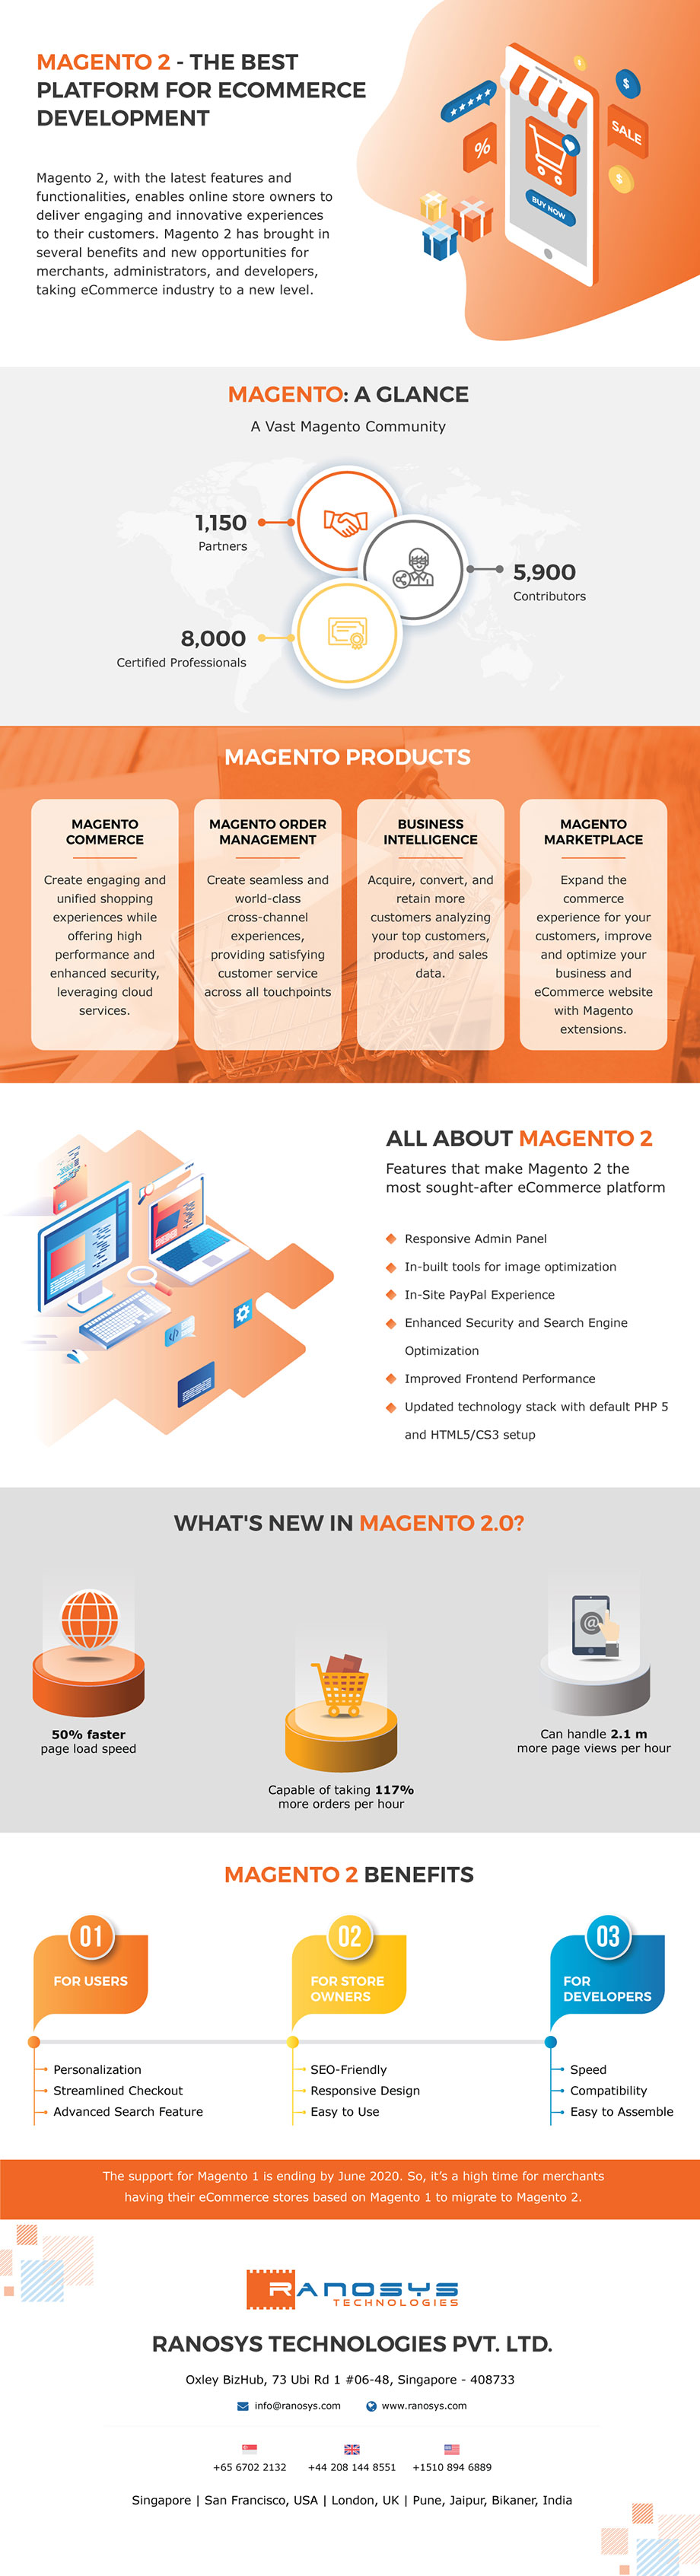 Magento 2 Migration: All you need to know (Infographic)